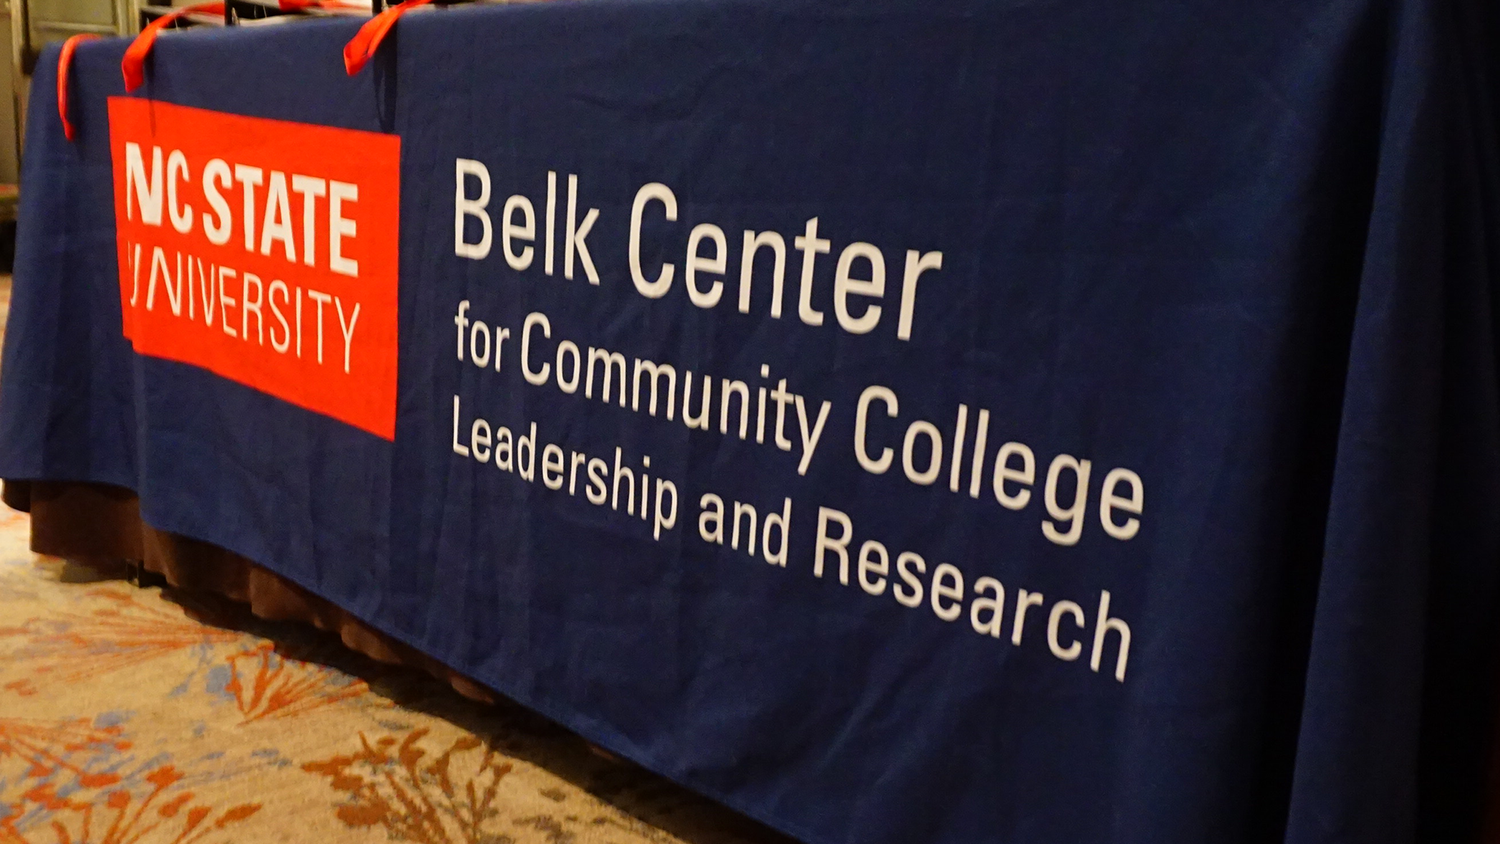 Belk Center for Community College Leadership and Research wordmark